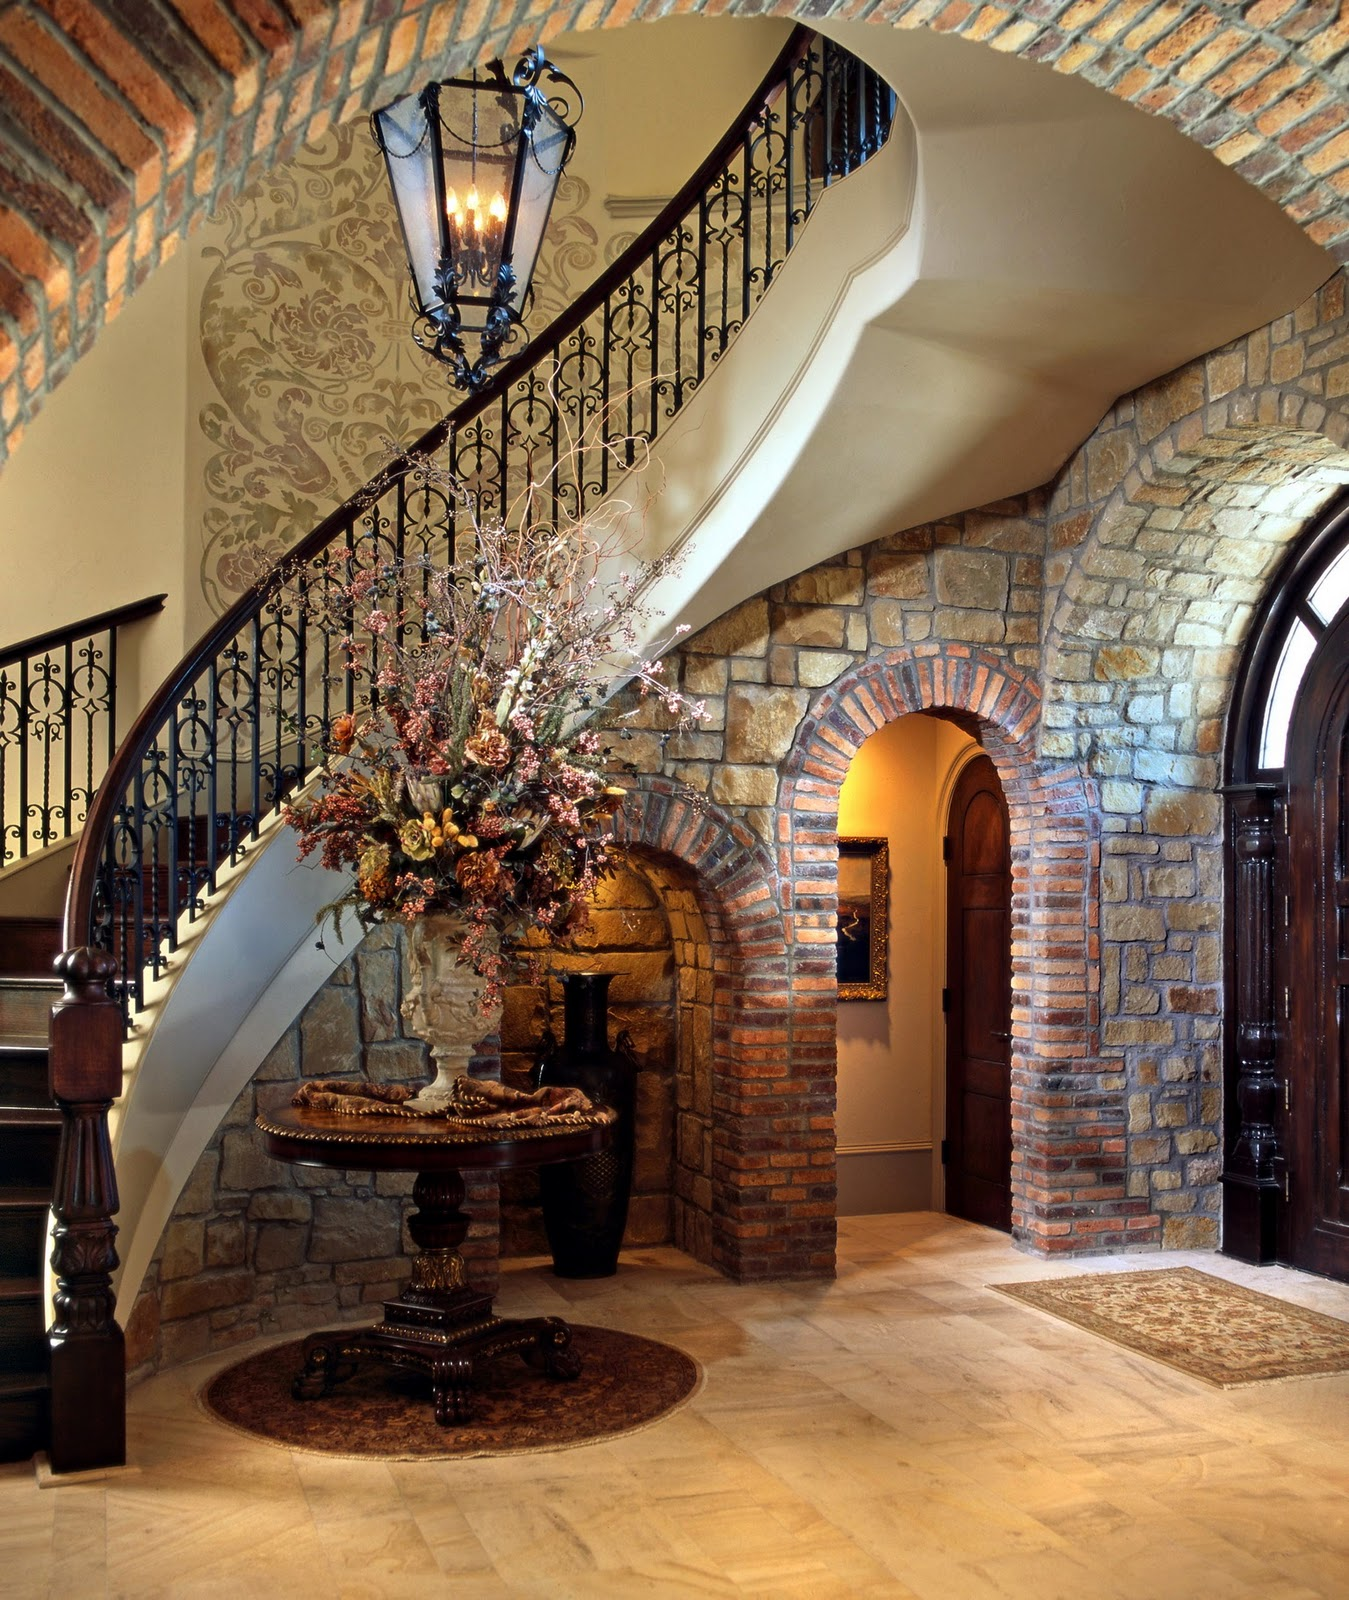 Lomonaco s Iron Concepts & Home Decor Tuscan Curved Stairway